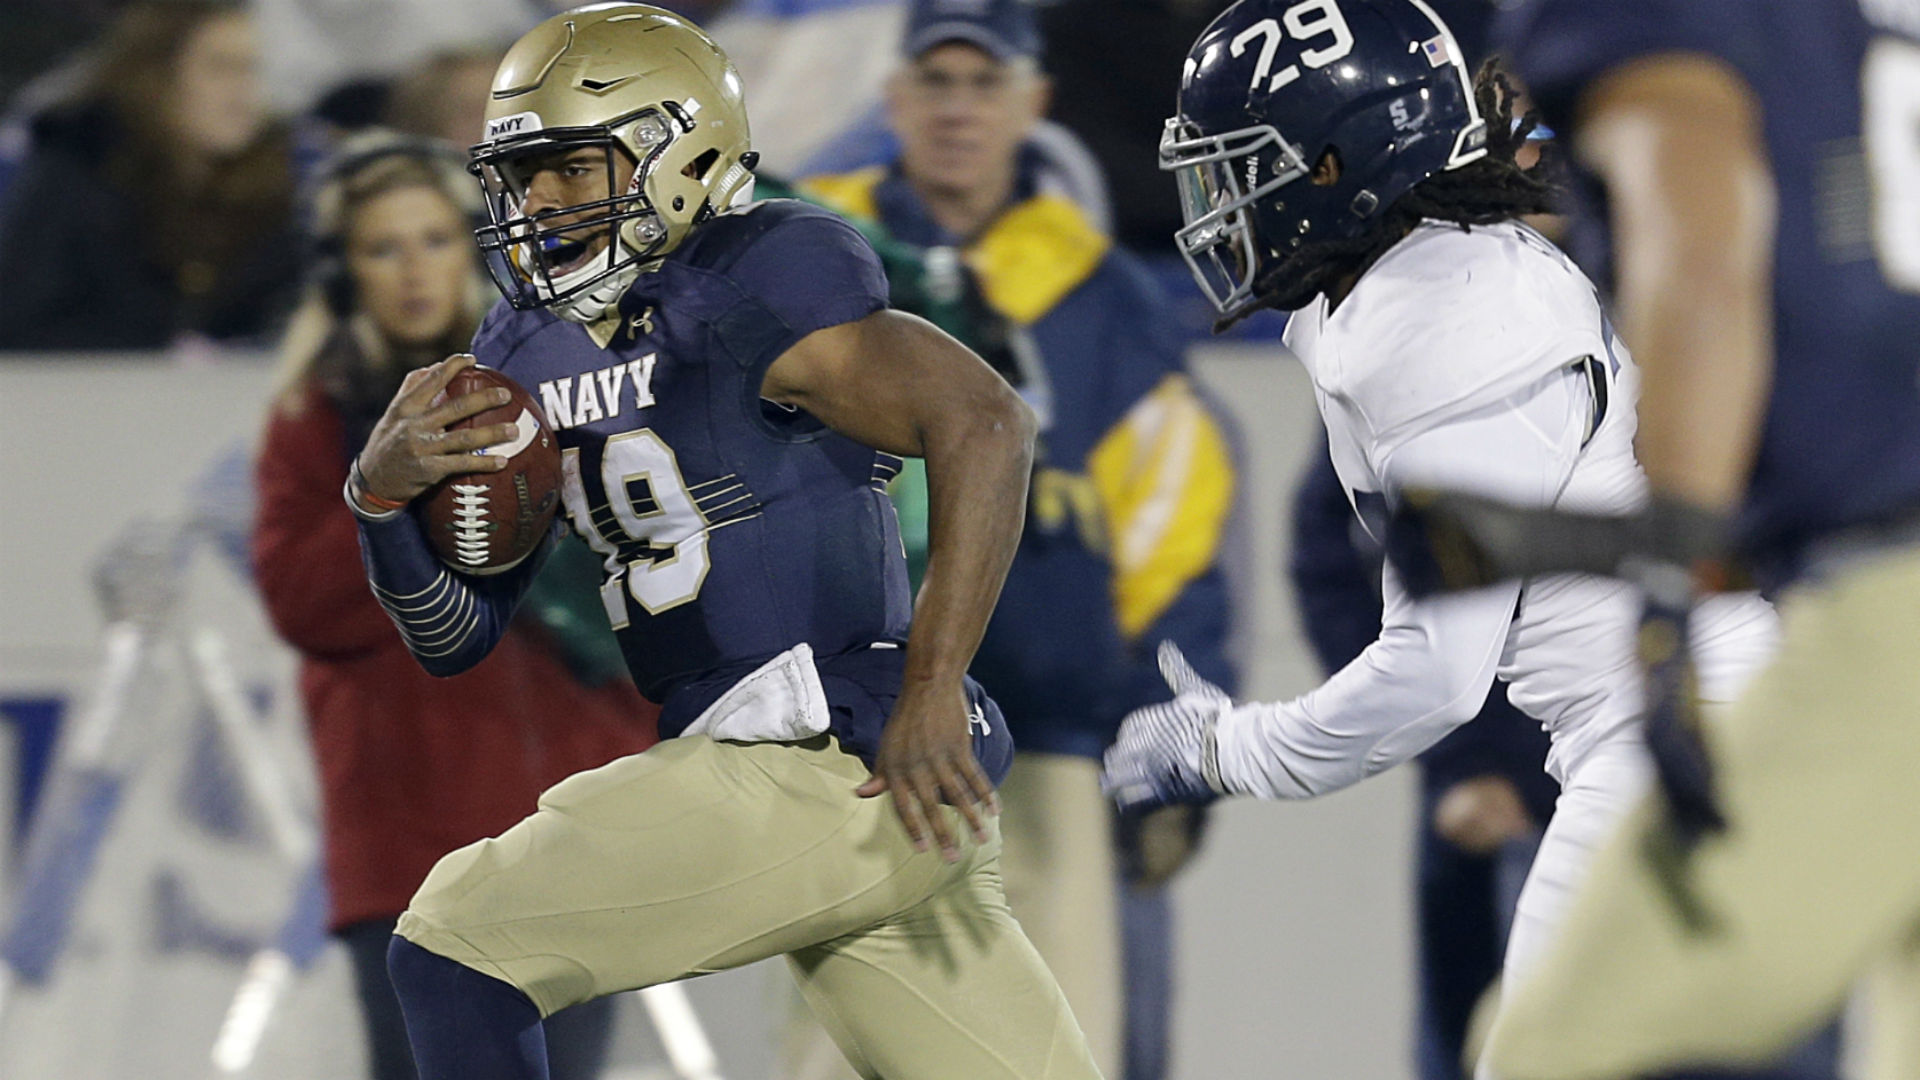 Army vs. Navy betting preview and pick – Midshipmen favored big in classic rivalry game